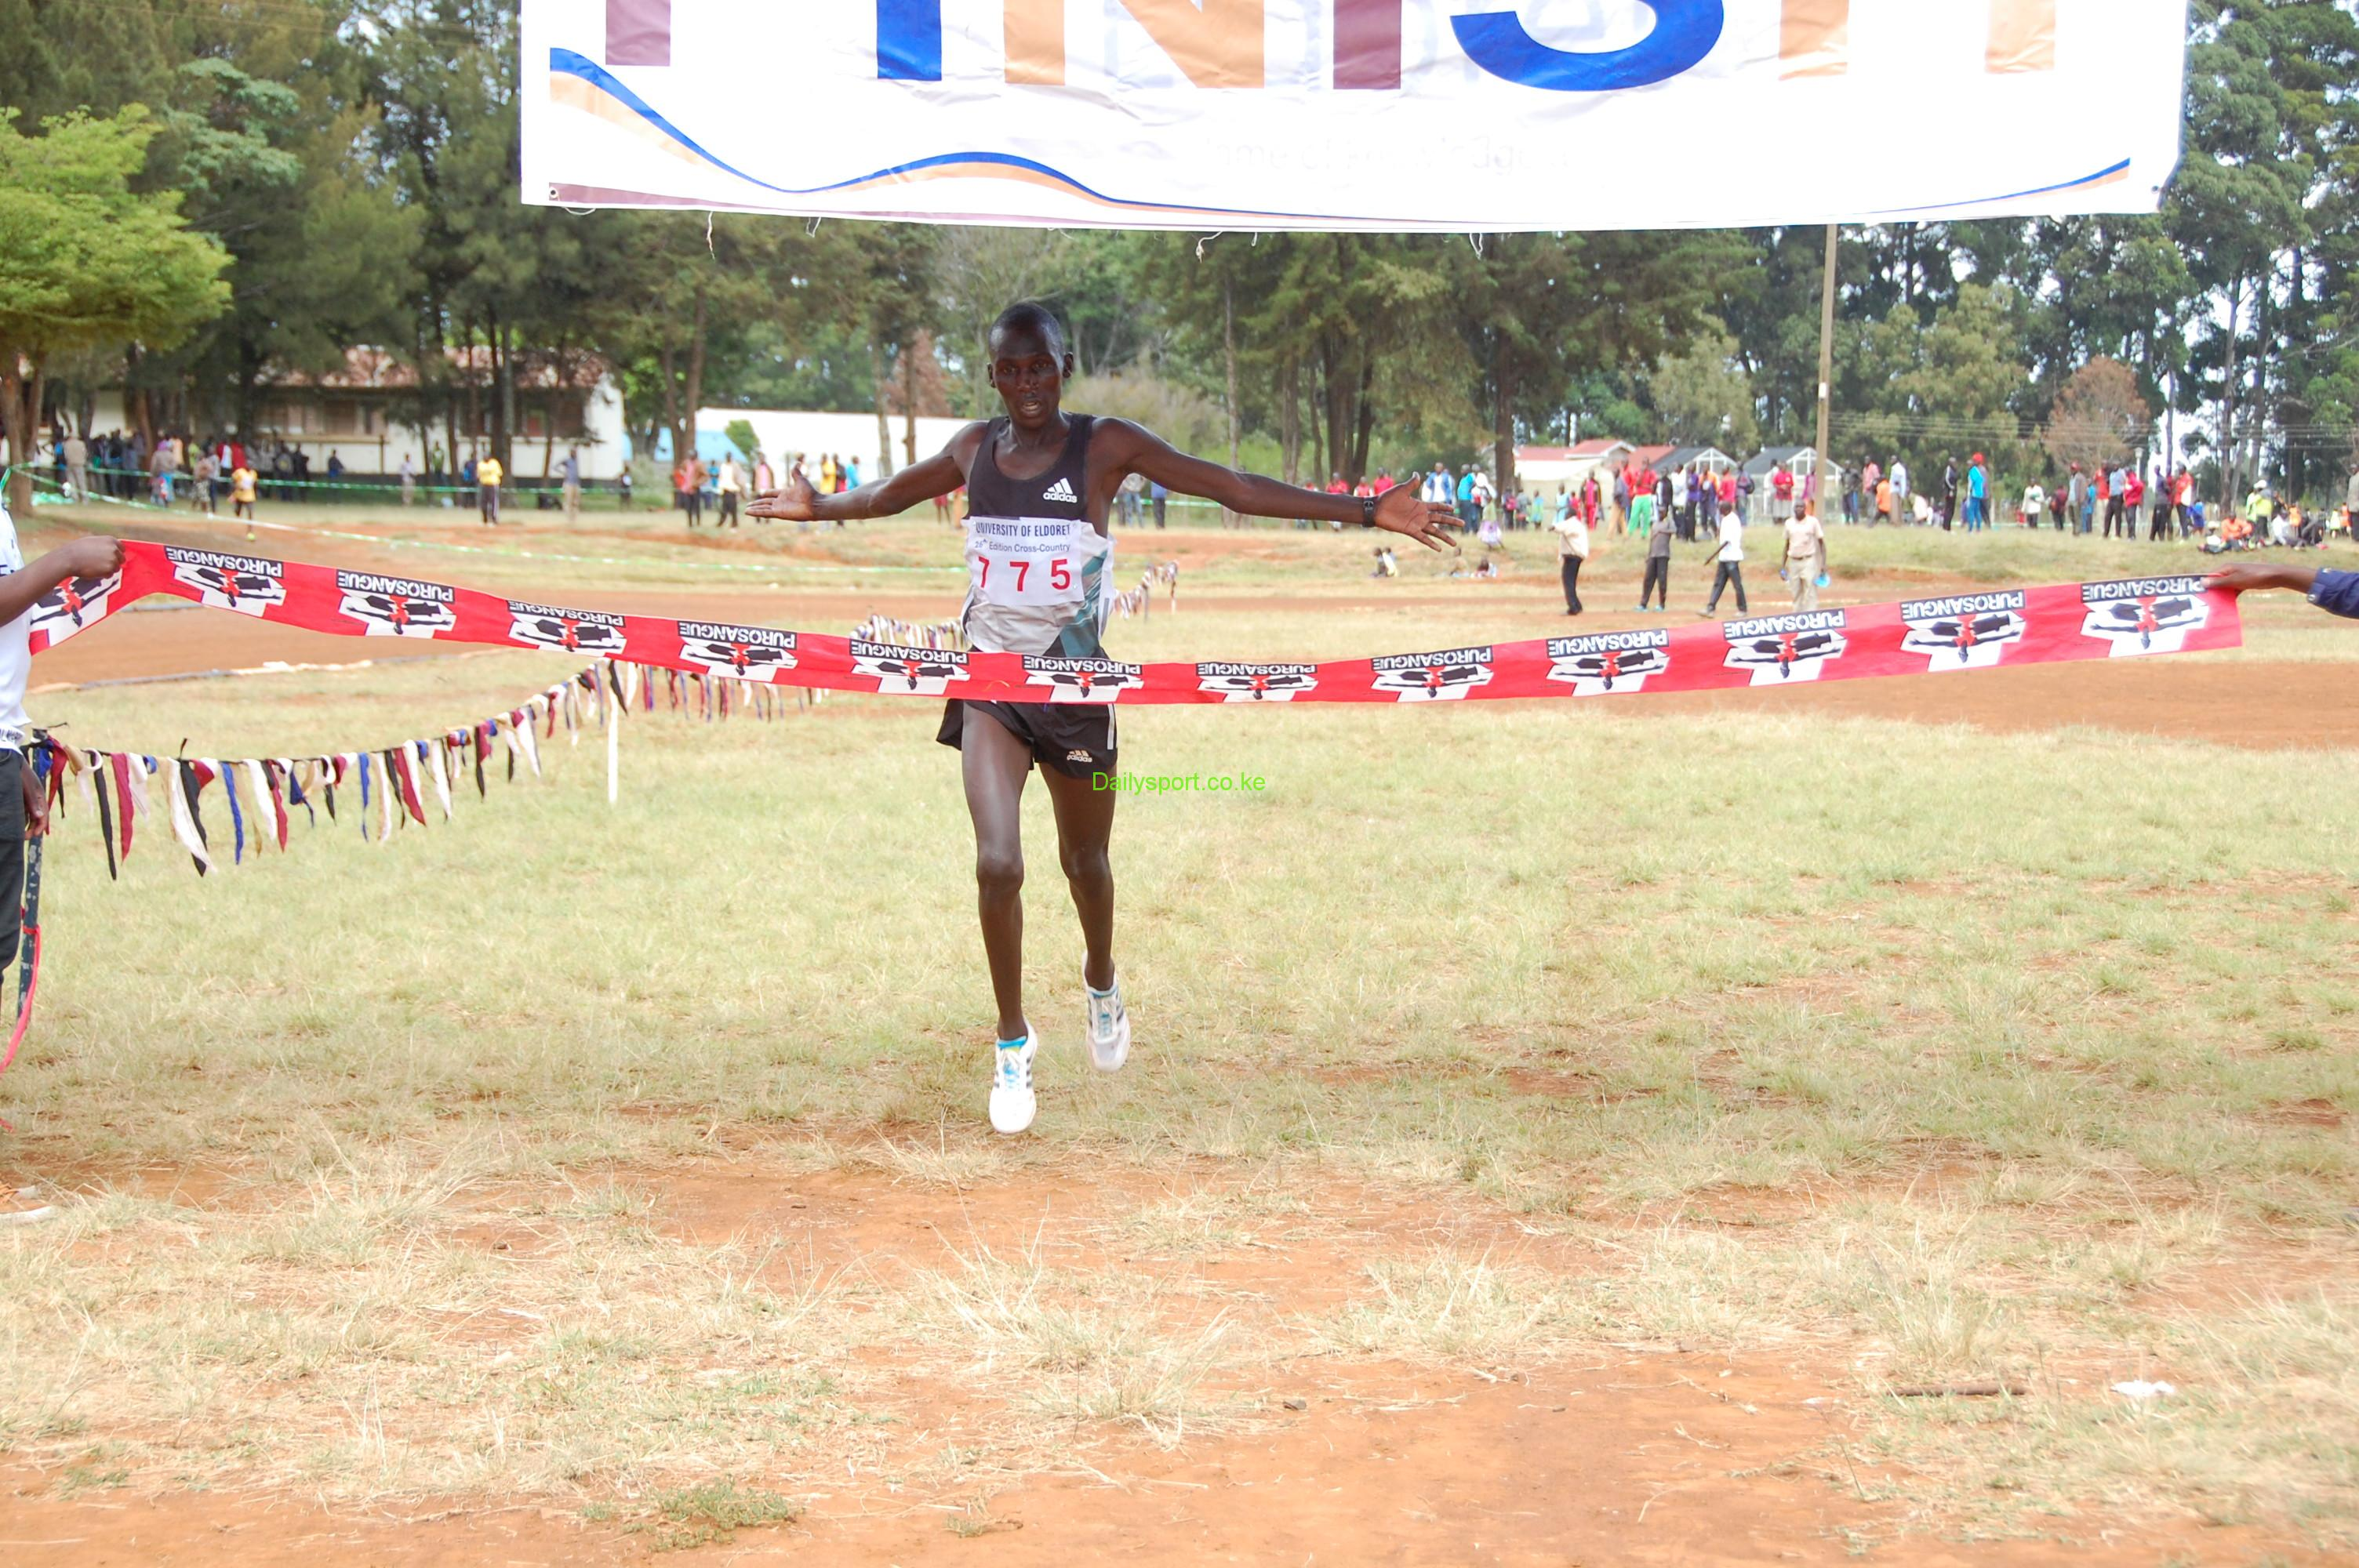 University of Eldoret, University of Eldoret cross country, Pascalia Jepkorir, Philip Kibungei, Kibet Rono, Athletics kenya, Athletics Kenya, Ndalat Gaa Cross country, Ndalat Cross country, Isaiah Kiplagat Ndalat Cross country